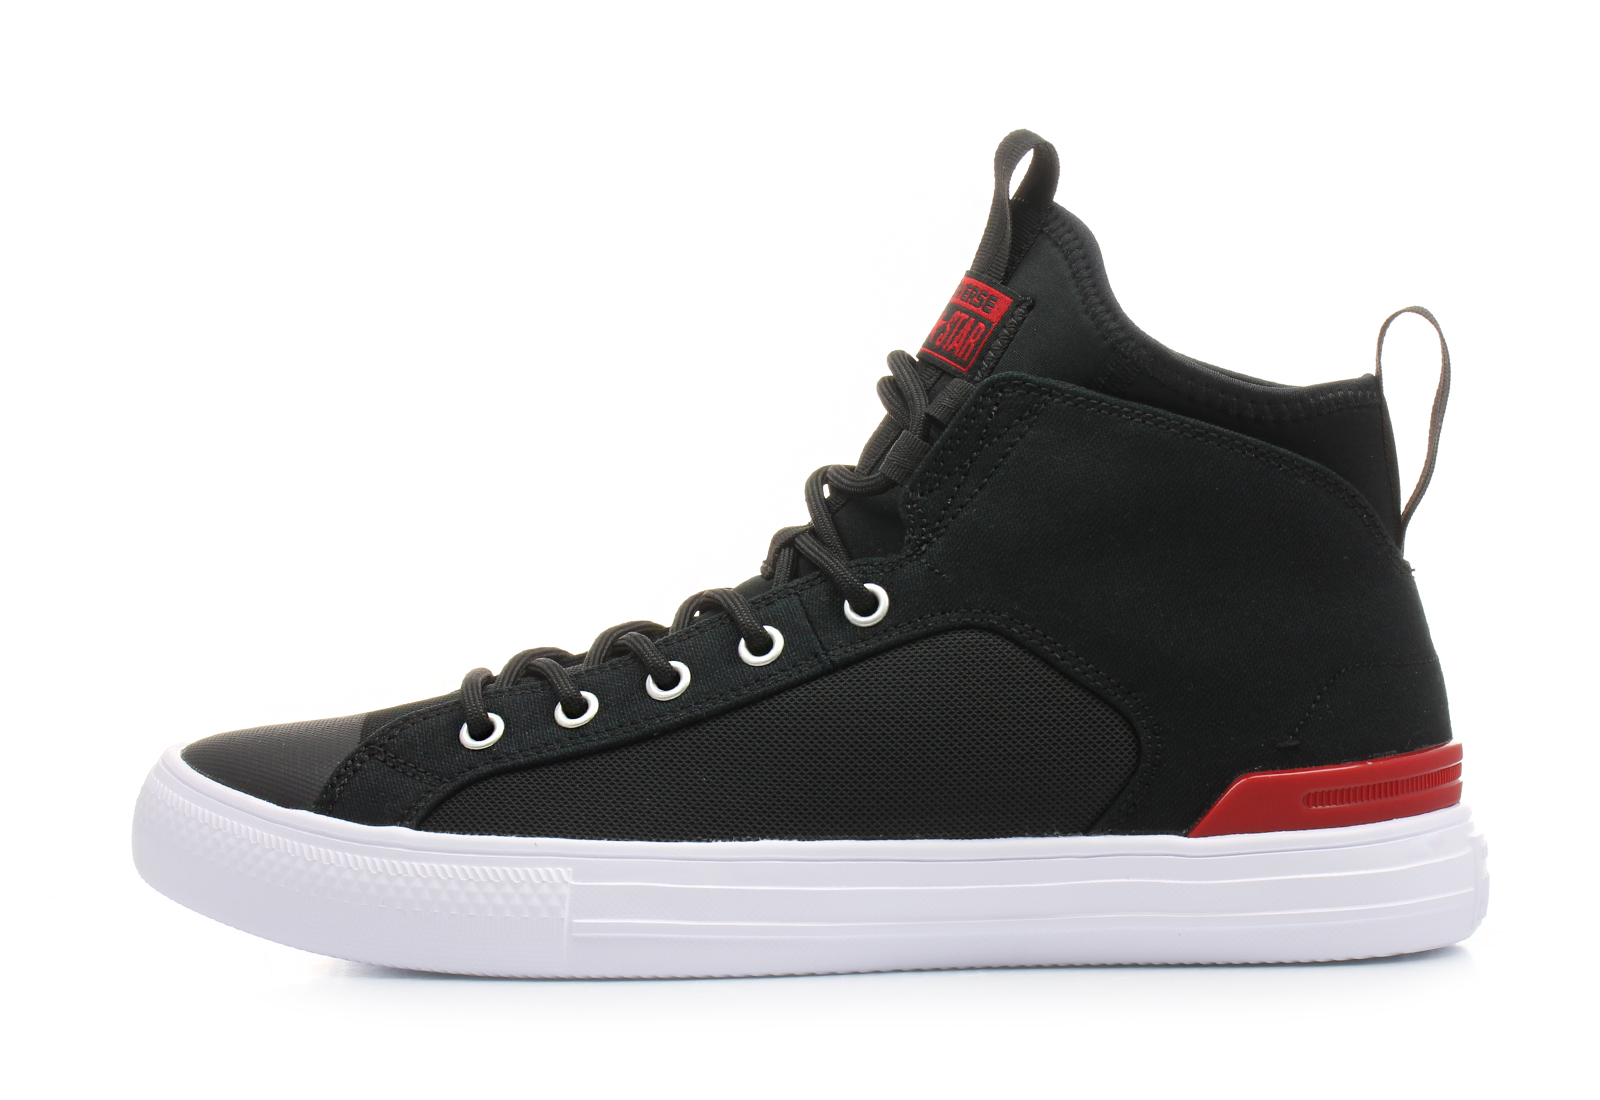 Converse Shoes Ct As Ultra Mid 159630c Online Shop